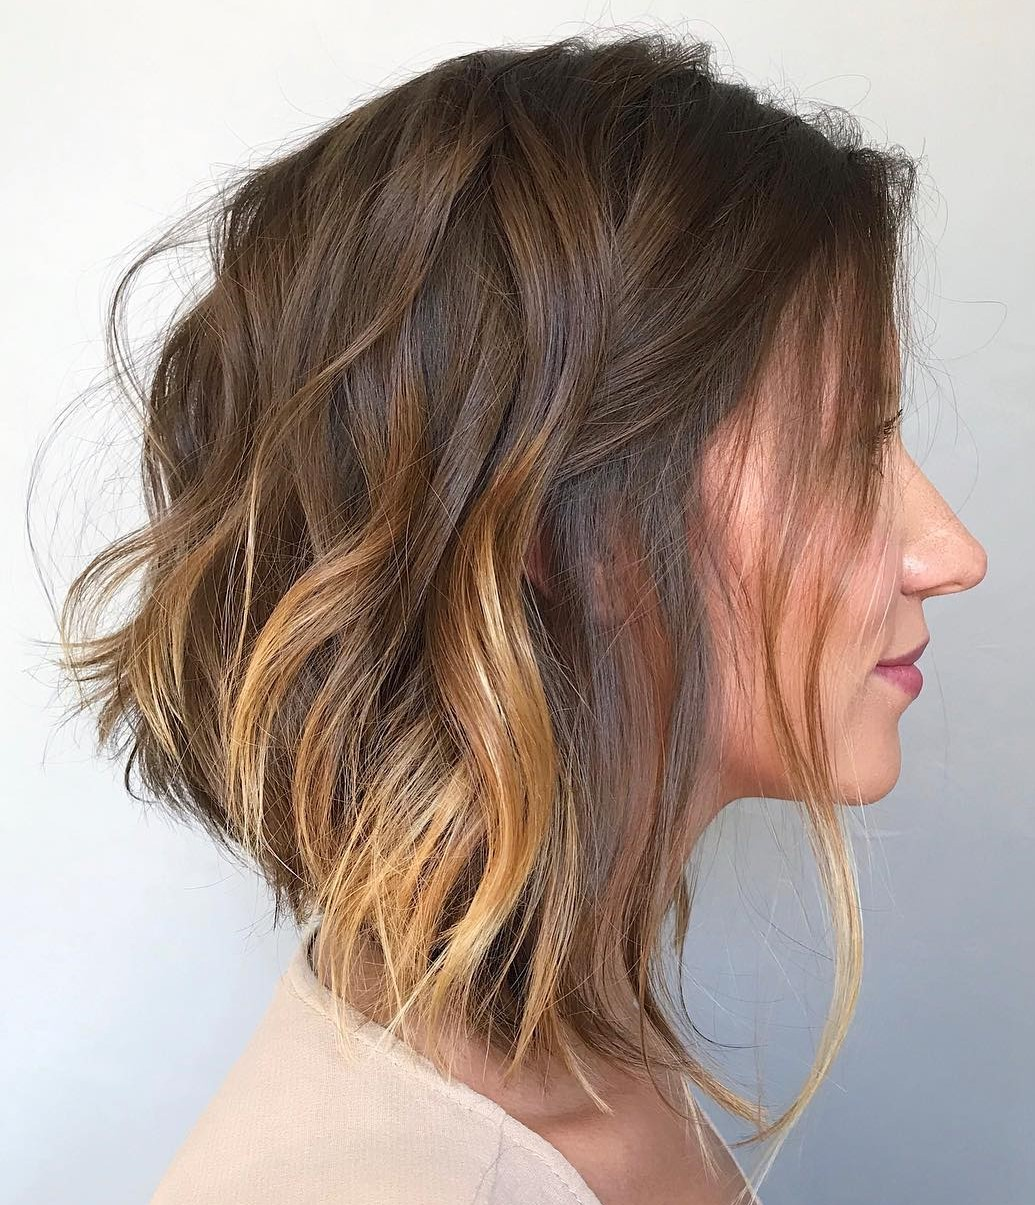 50 Medium Haircuts for Women That'll Be Huge in 2020 - Hair Adviser